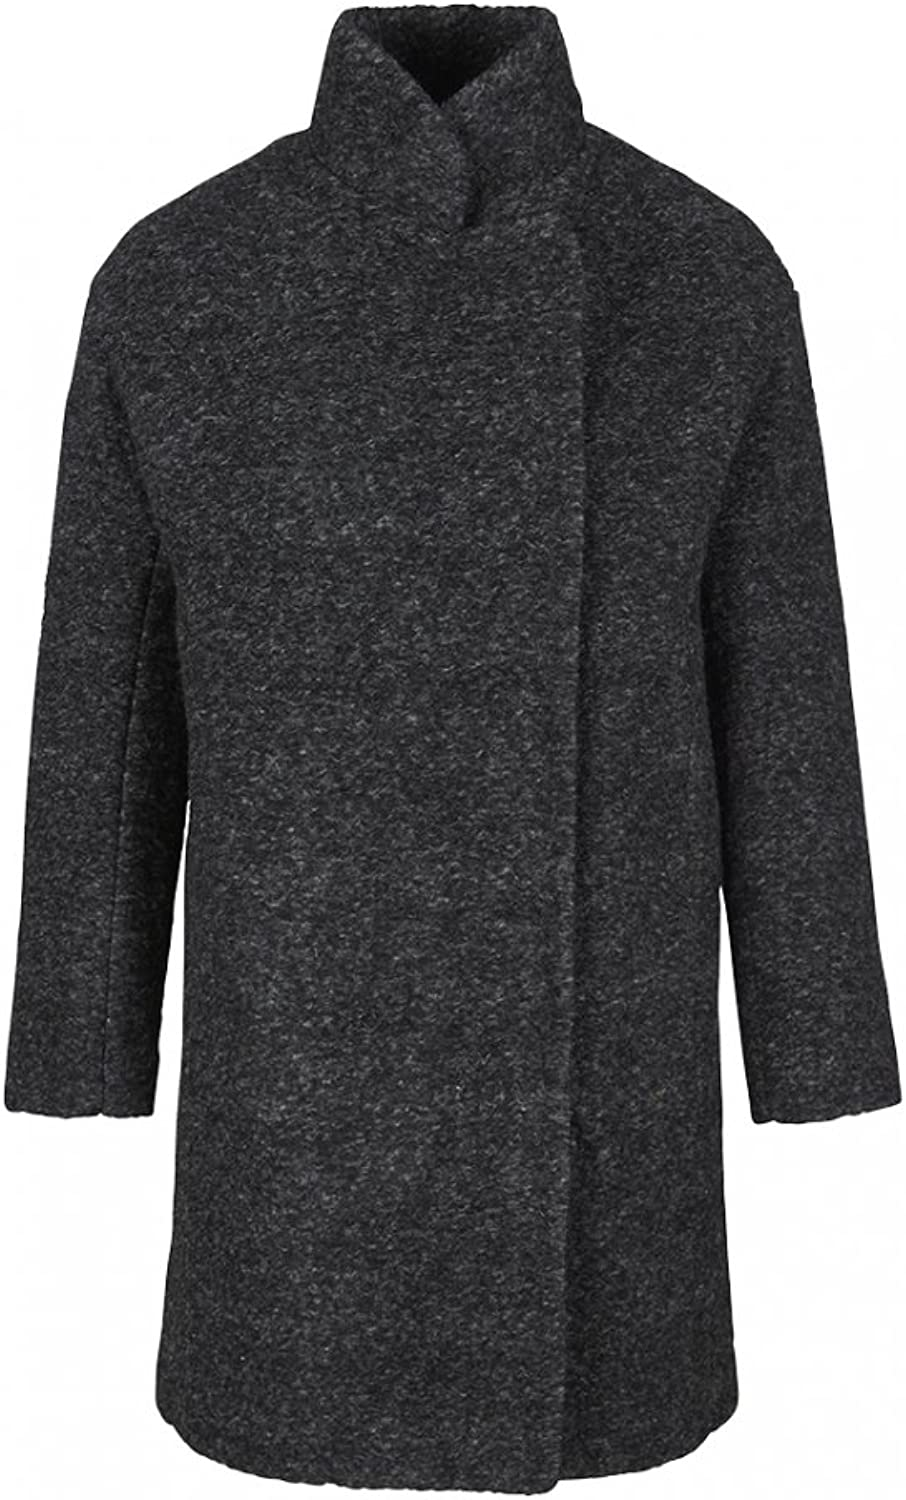 Samsoe & Samsoe Mildred Womens Jacket 7210 M Black Mel